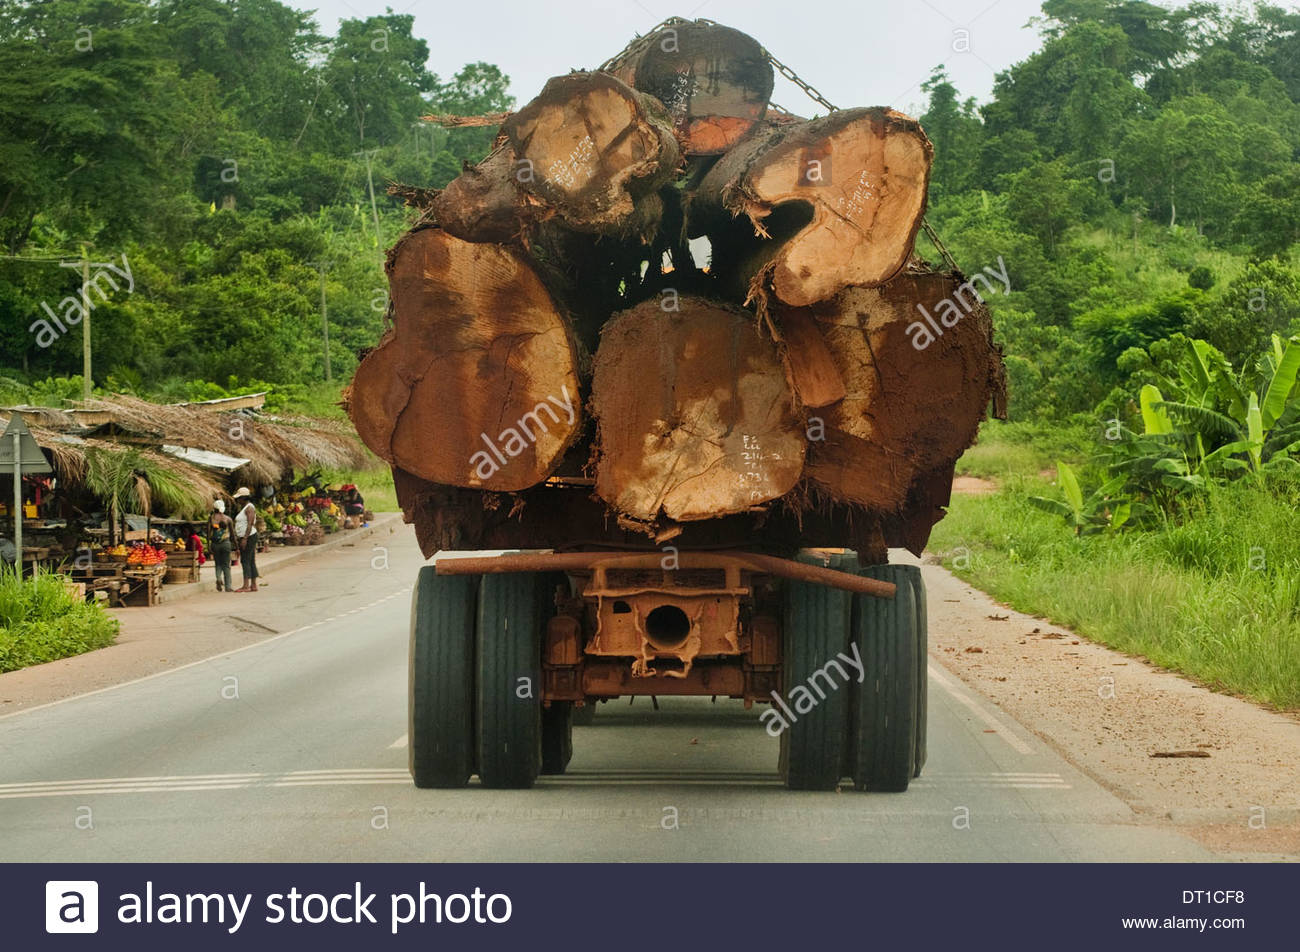 Atobiase Ghana Truck loaded with rainforest timber Atobiase Ghana - Stock Image